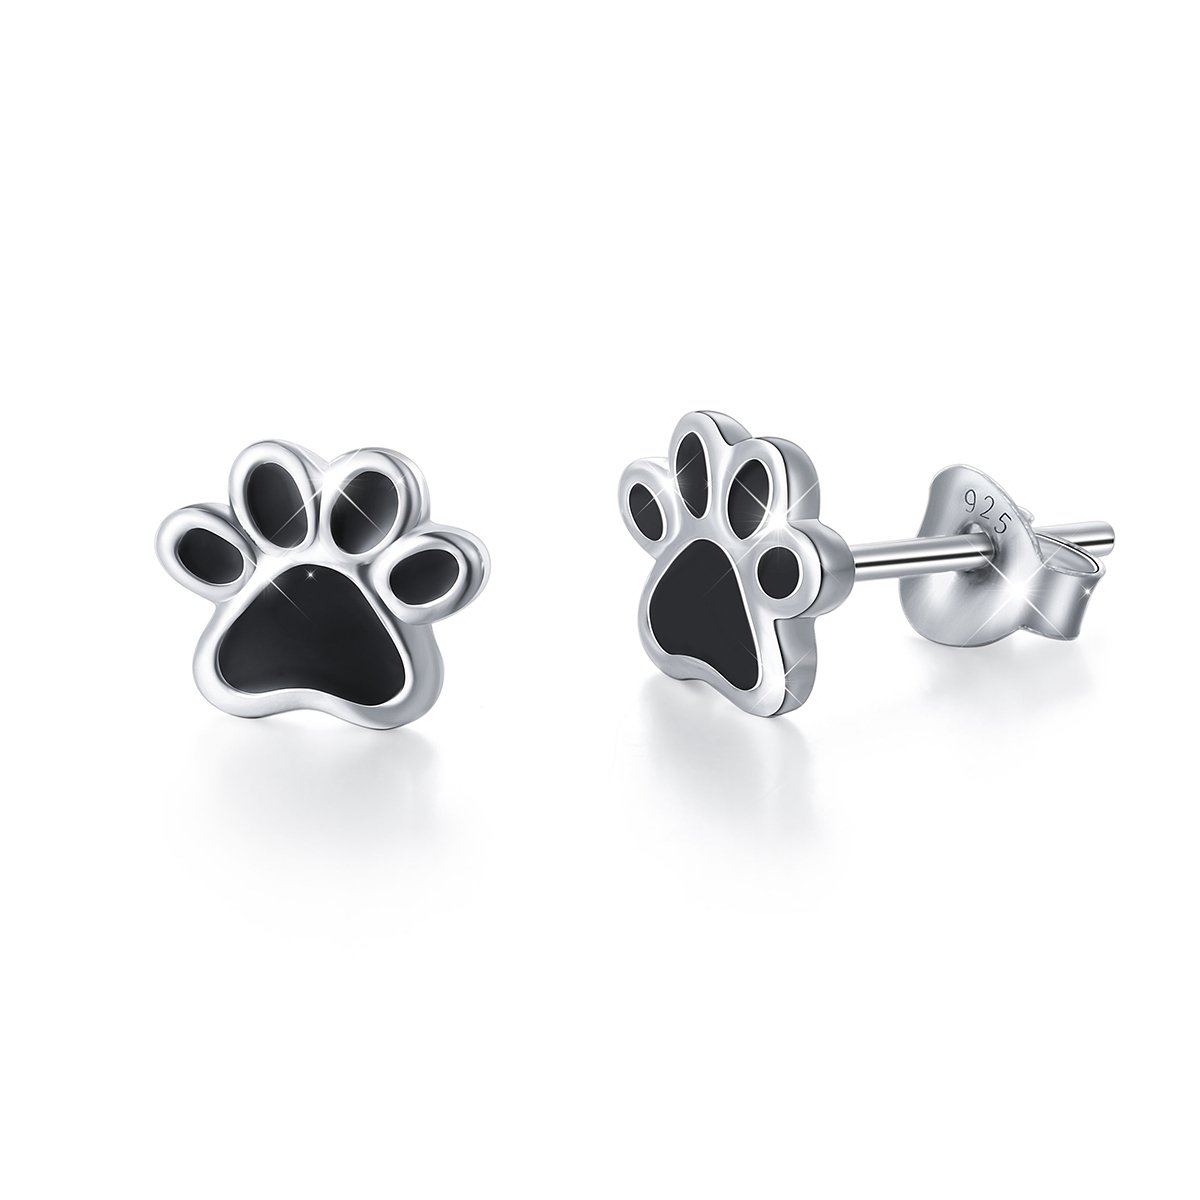 S925 Sterling Silver Puppy Dog Cat Pet Paw Print Stud Earrings